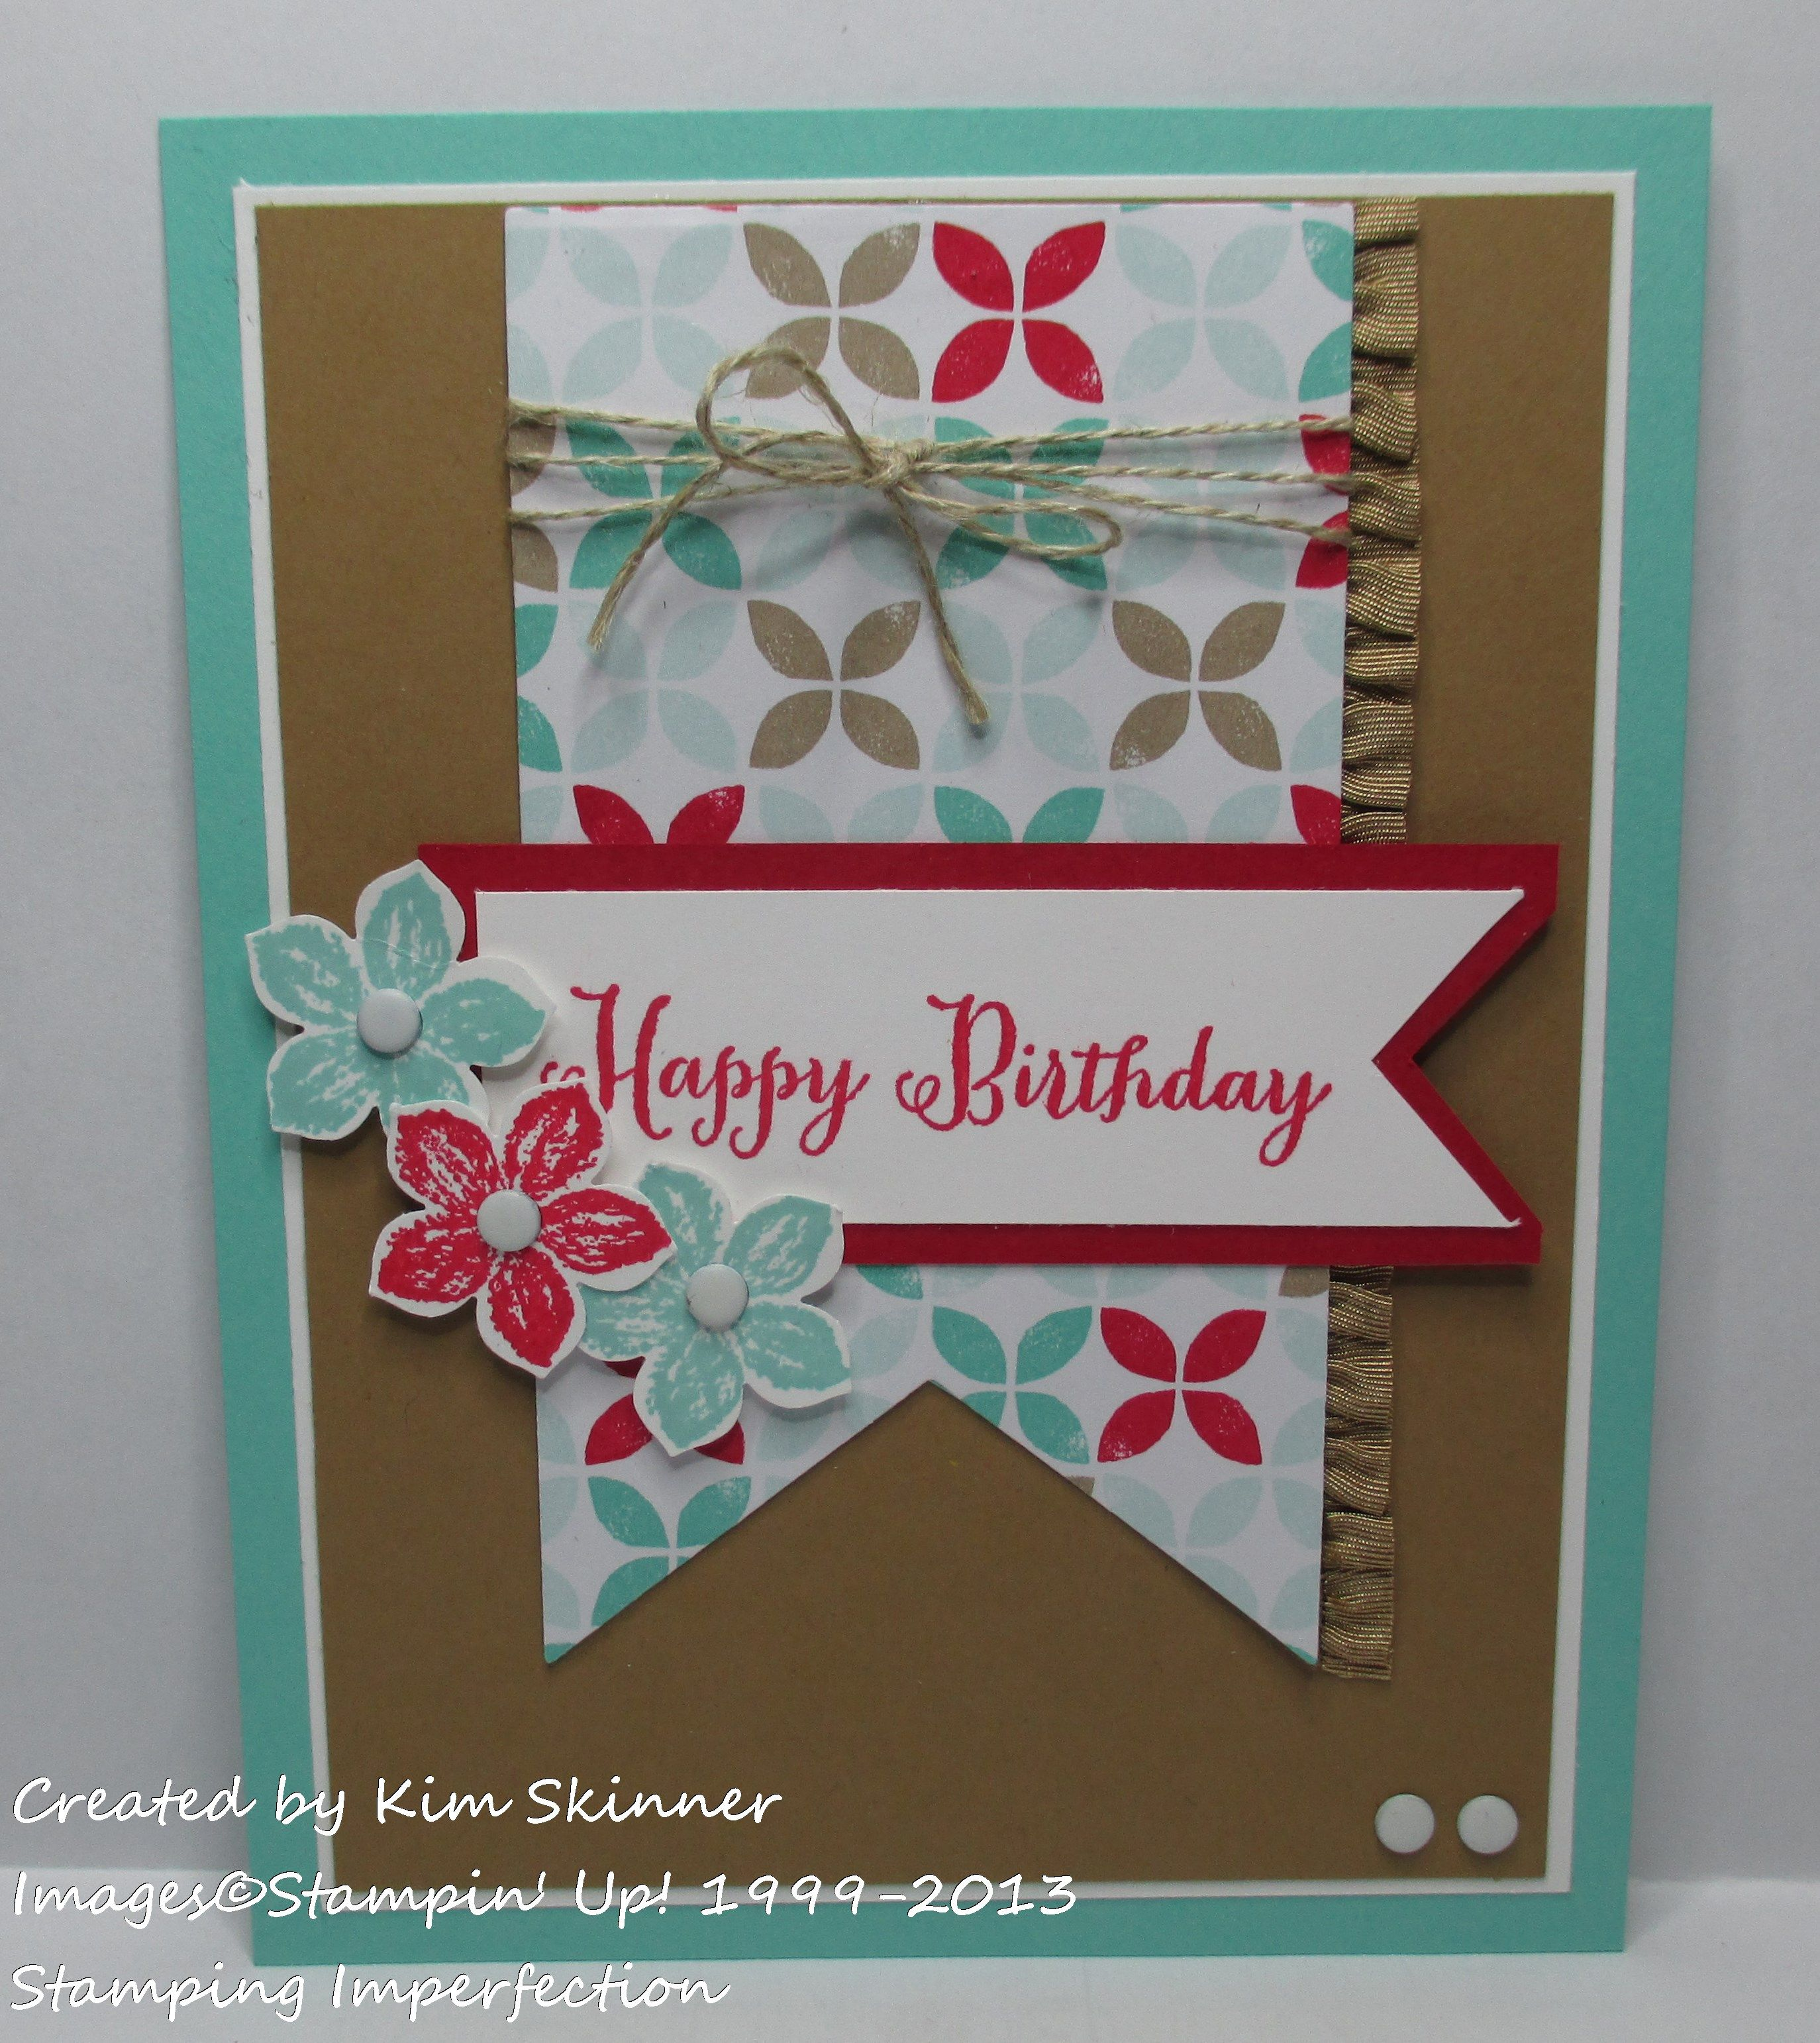 Diy Birthday Cards With The Latest Trends Stamping Imperfection